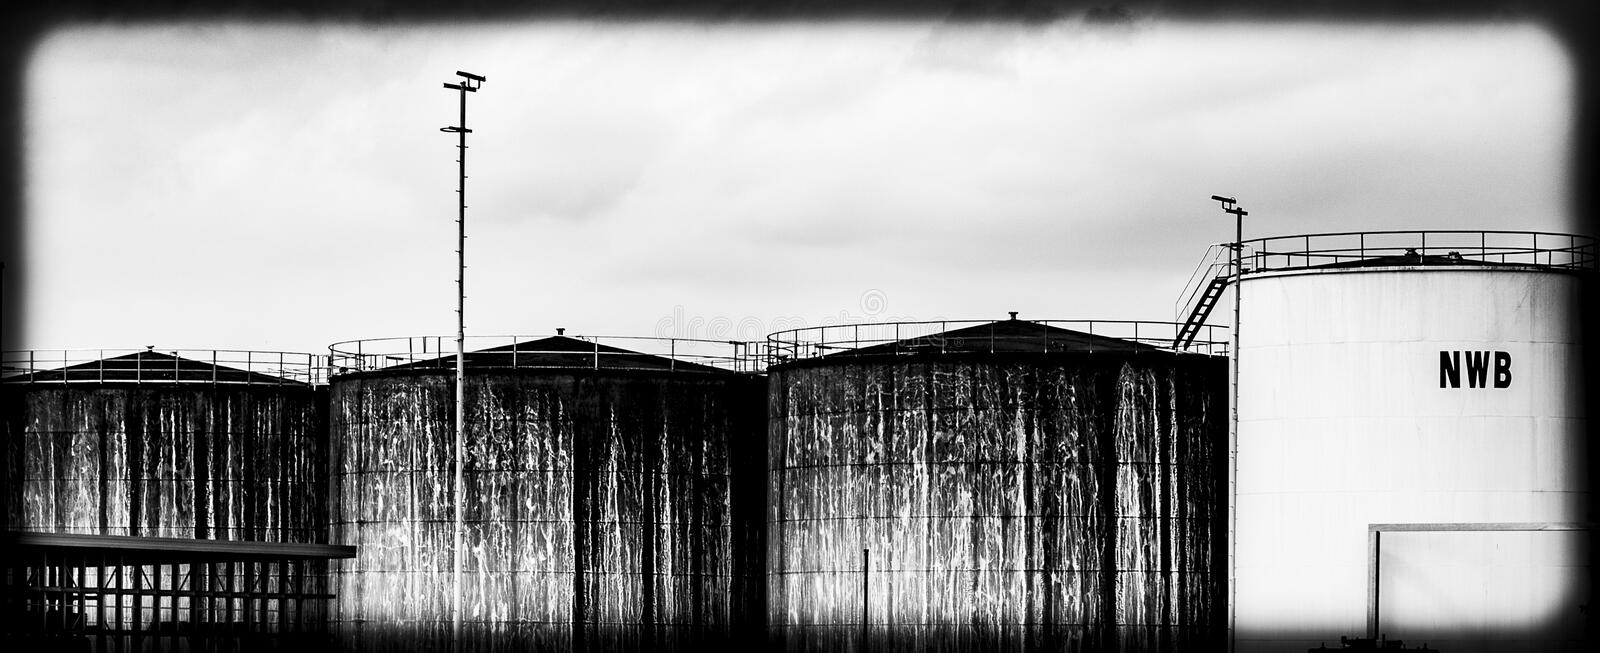 Silos in a industrial harbour stock image